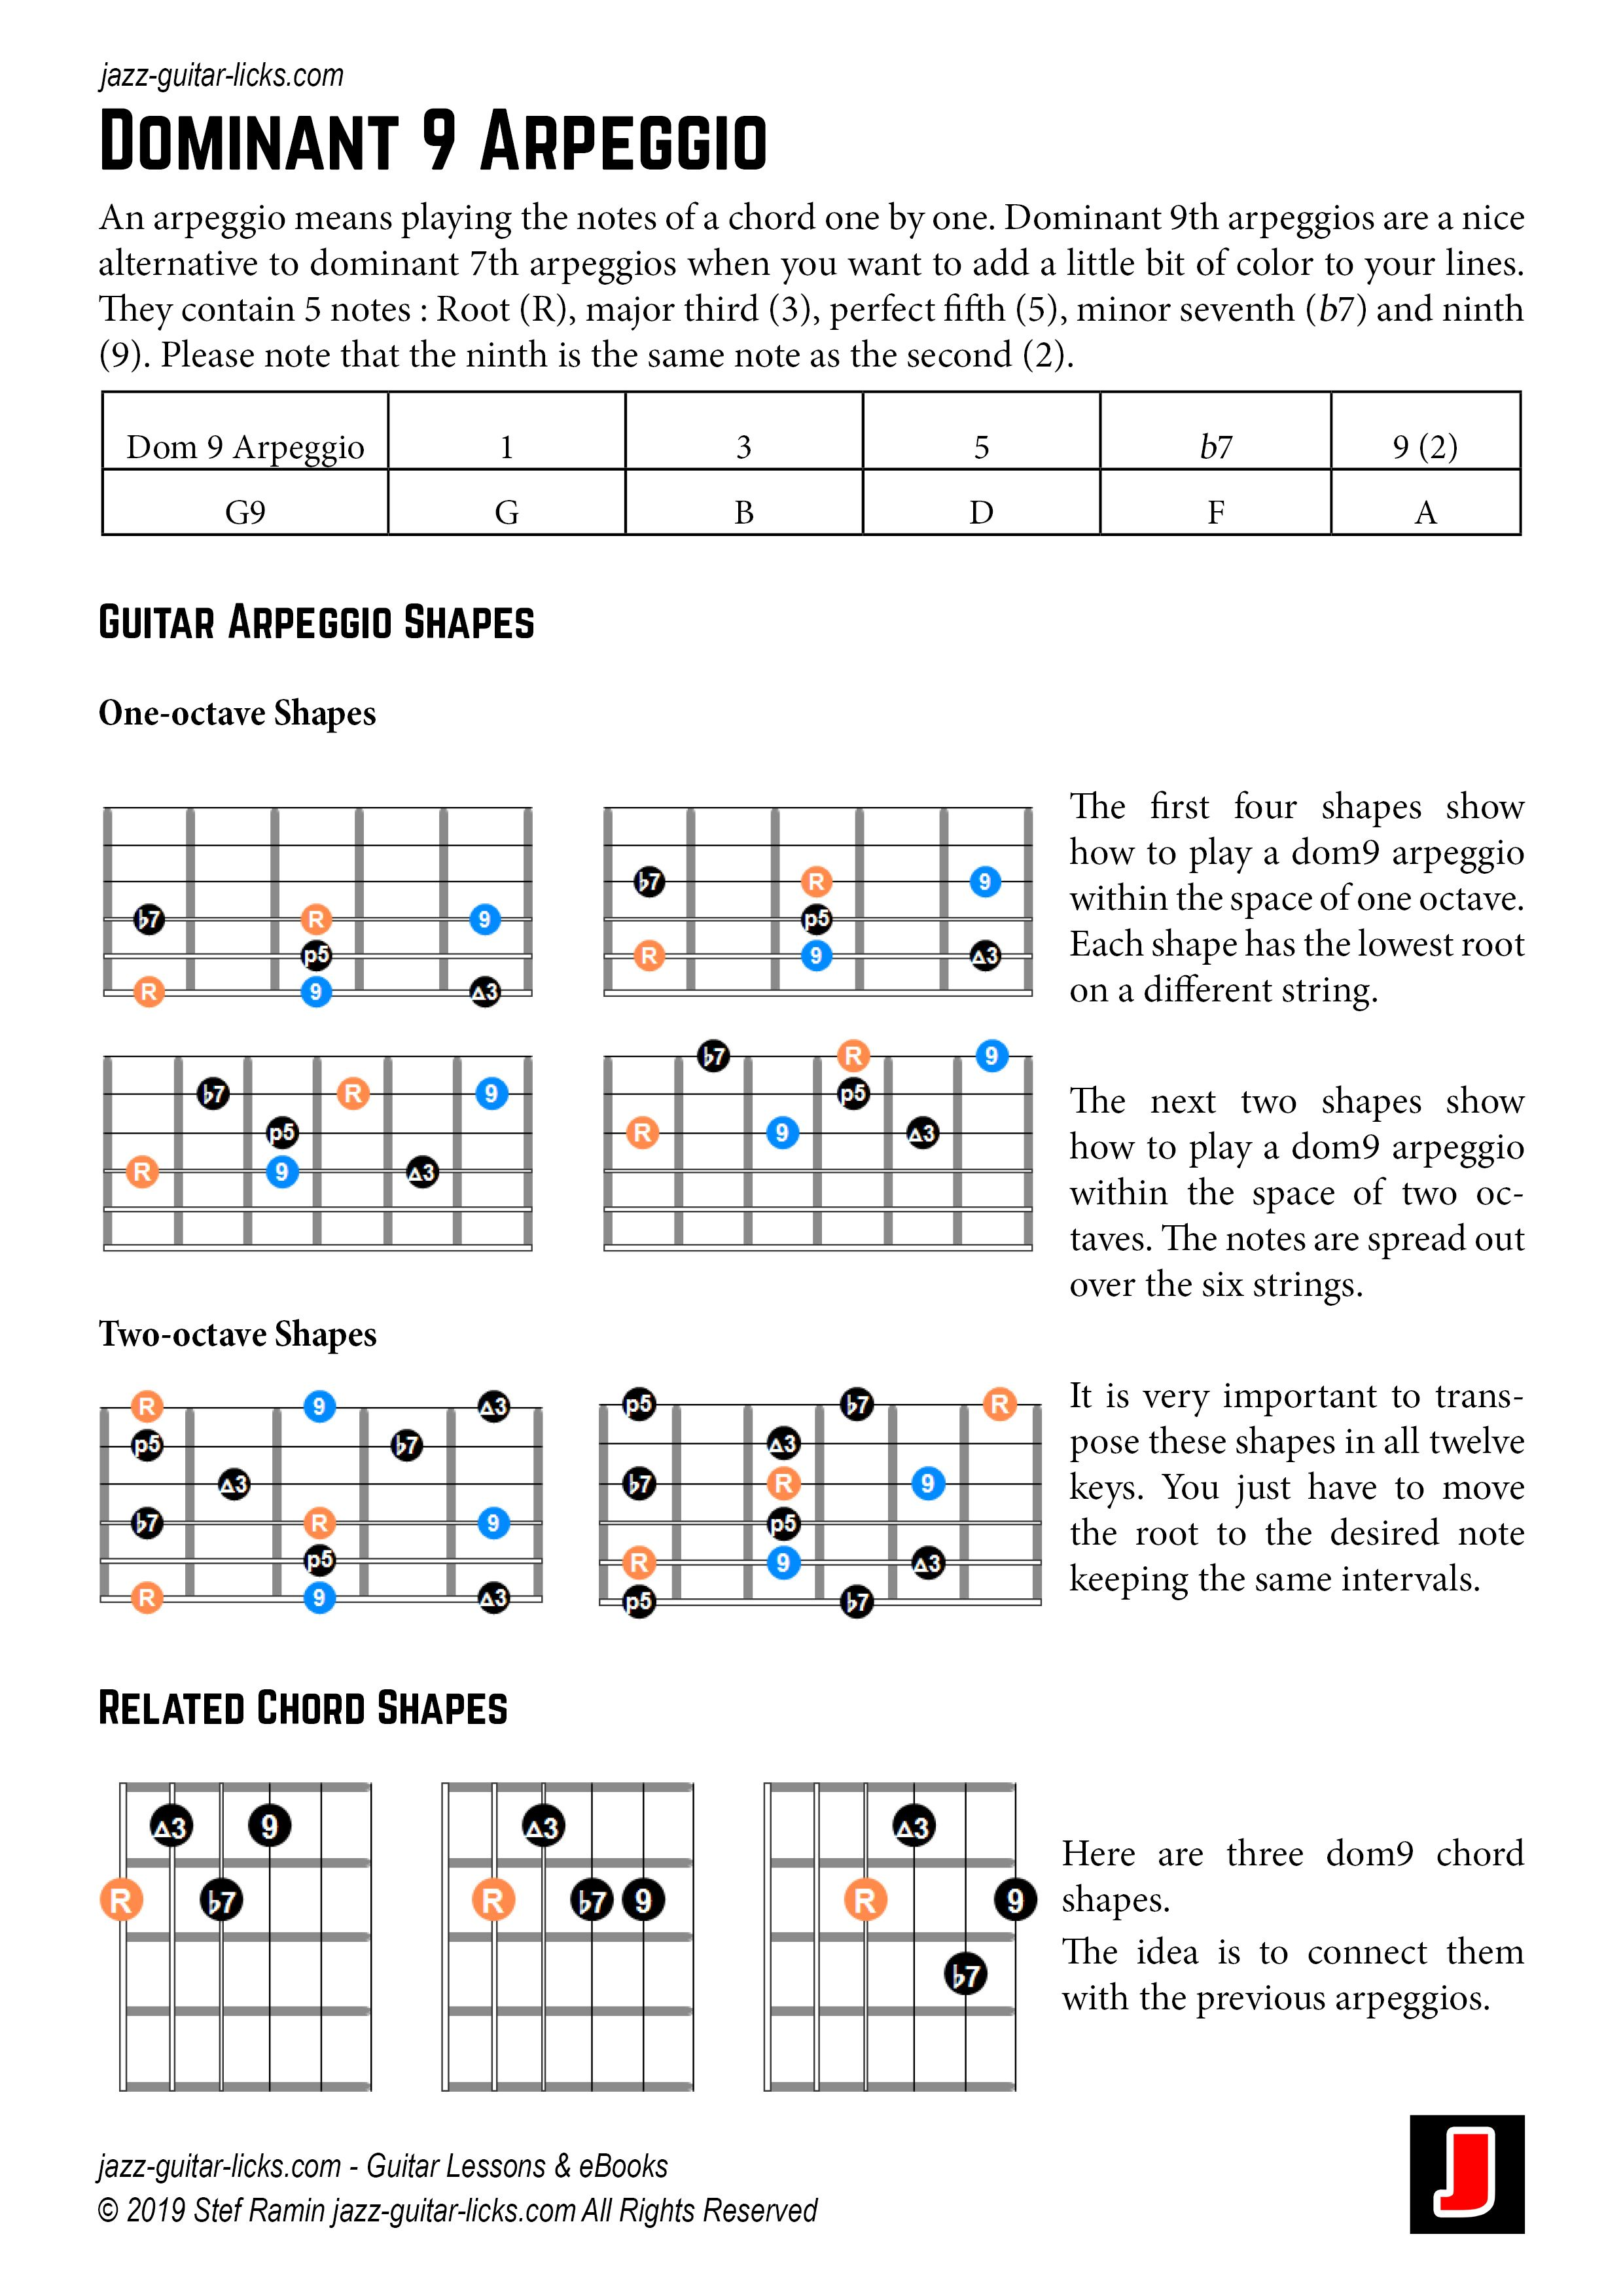 Dominant 9 Arpeggio Shapes And Related Chords For Guitar Get More